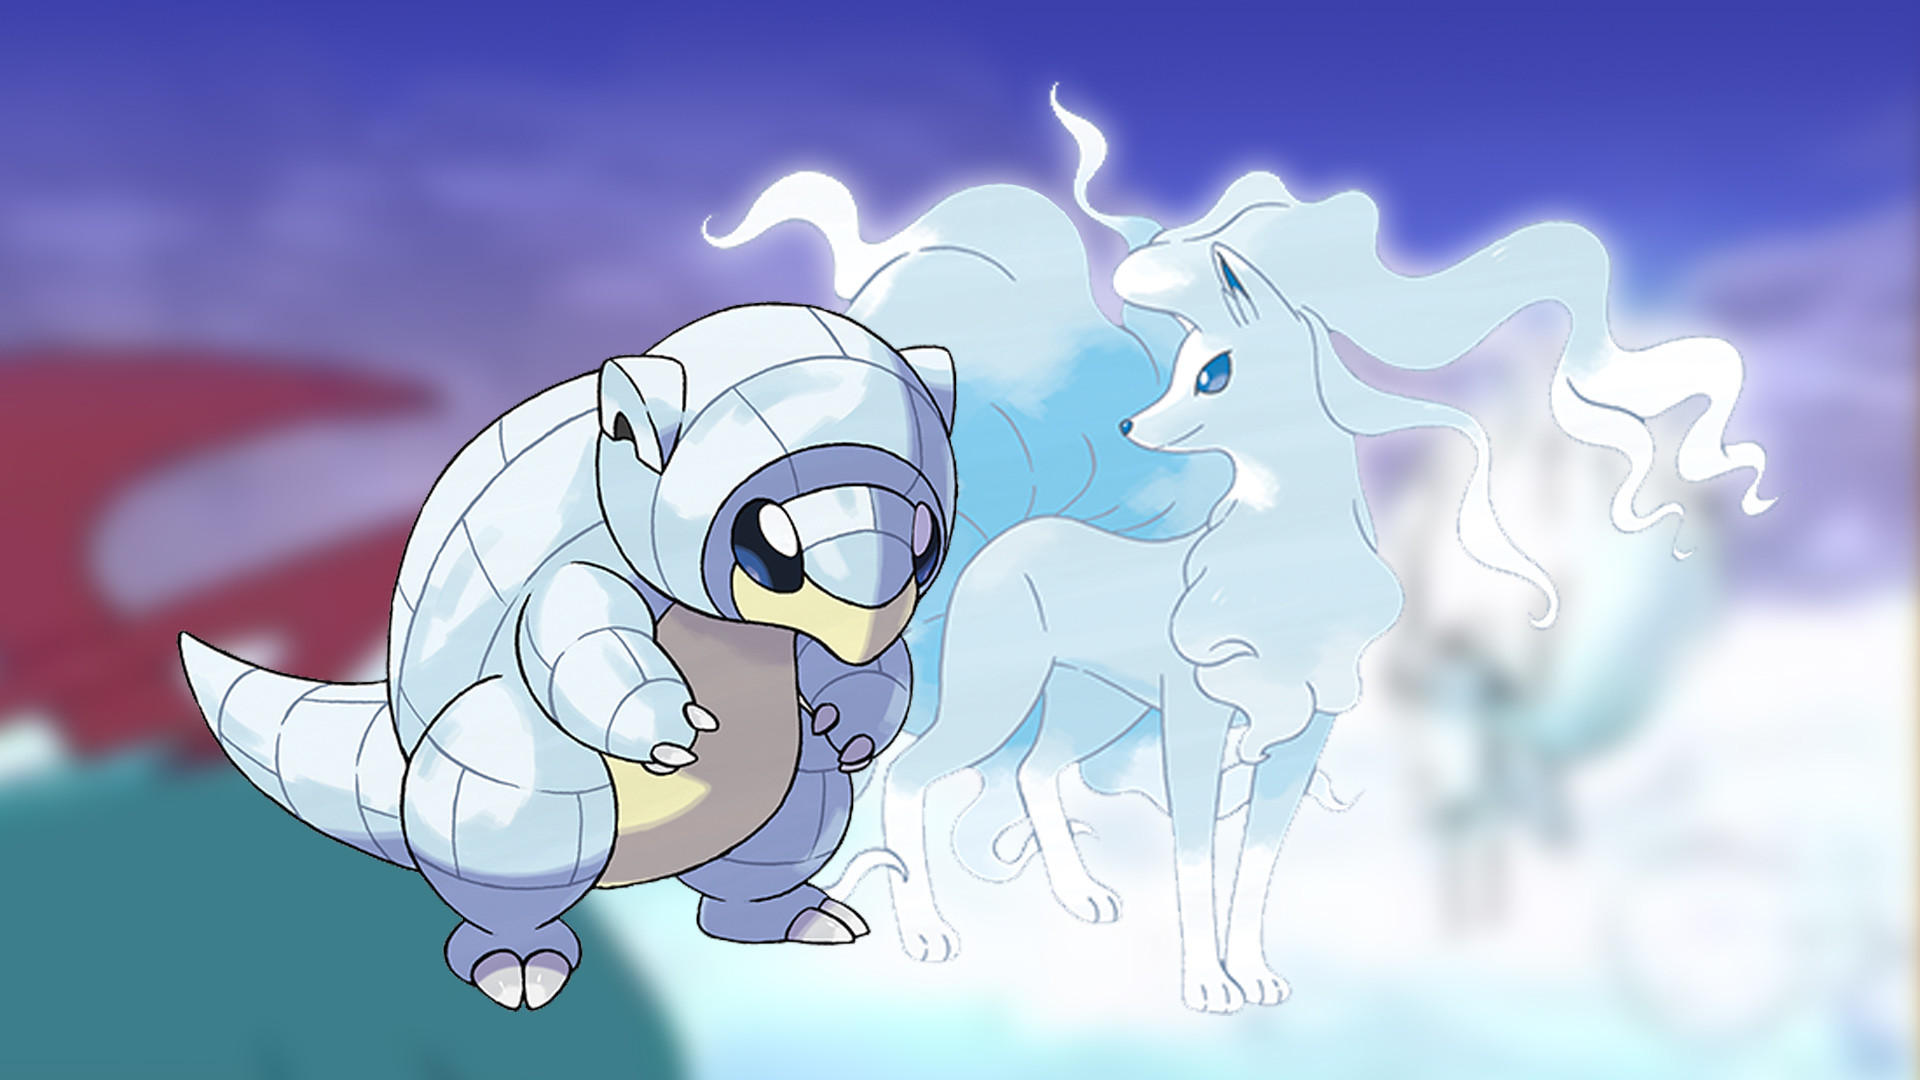 Alola's extreme climates lead to new Pokémon forms in Sun and Moon |  Nintendo Wire